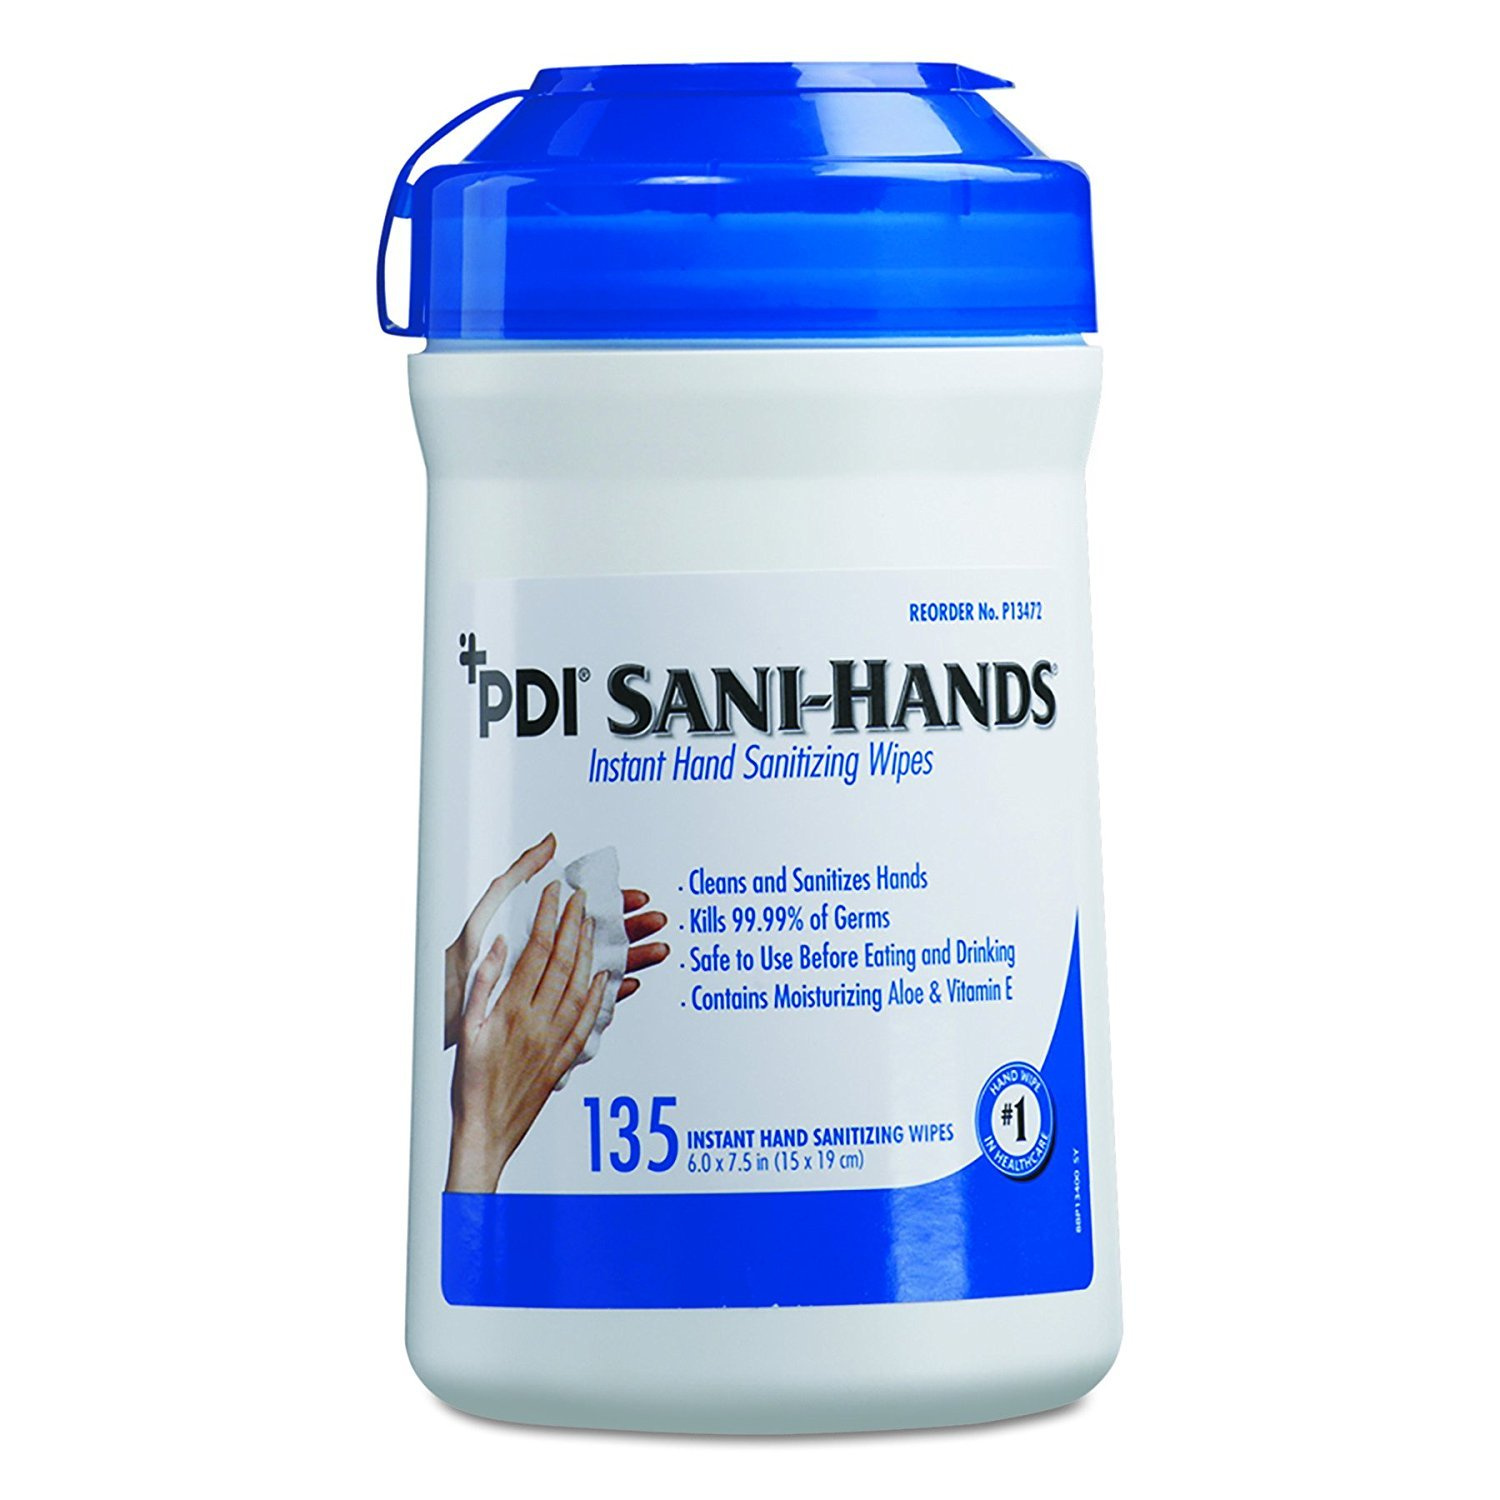 PDI Sani-Hands Medium Canister Disinfecting Hand Wipes (Case of 12) by PDI